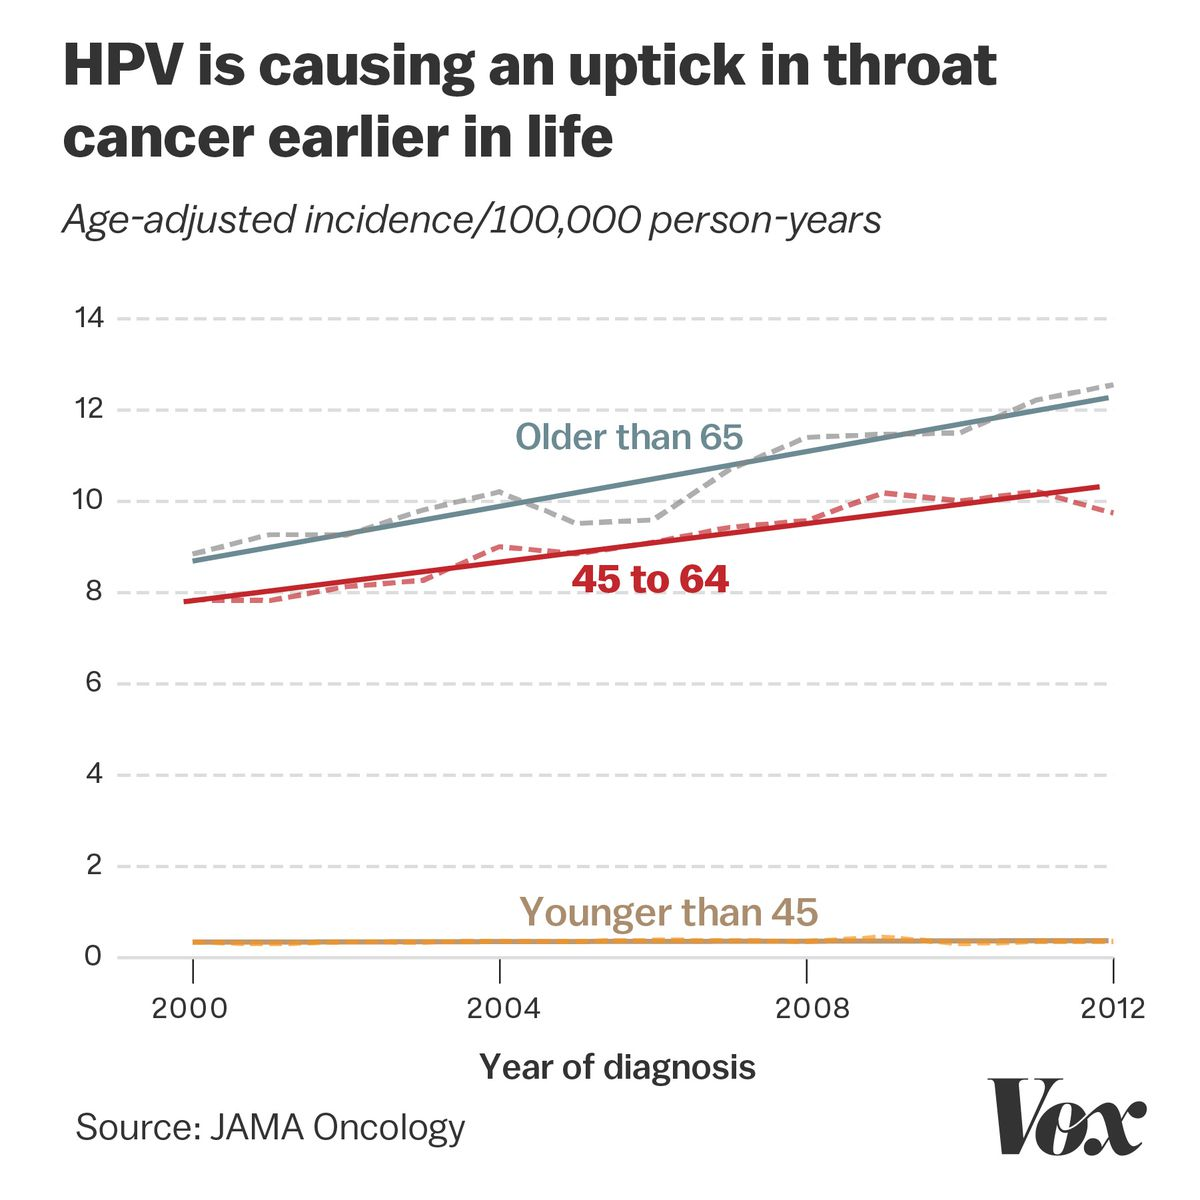 HPV head, neck, and anal cancers are on the rise - Vox